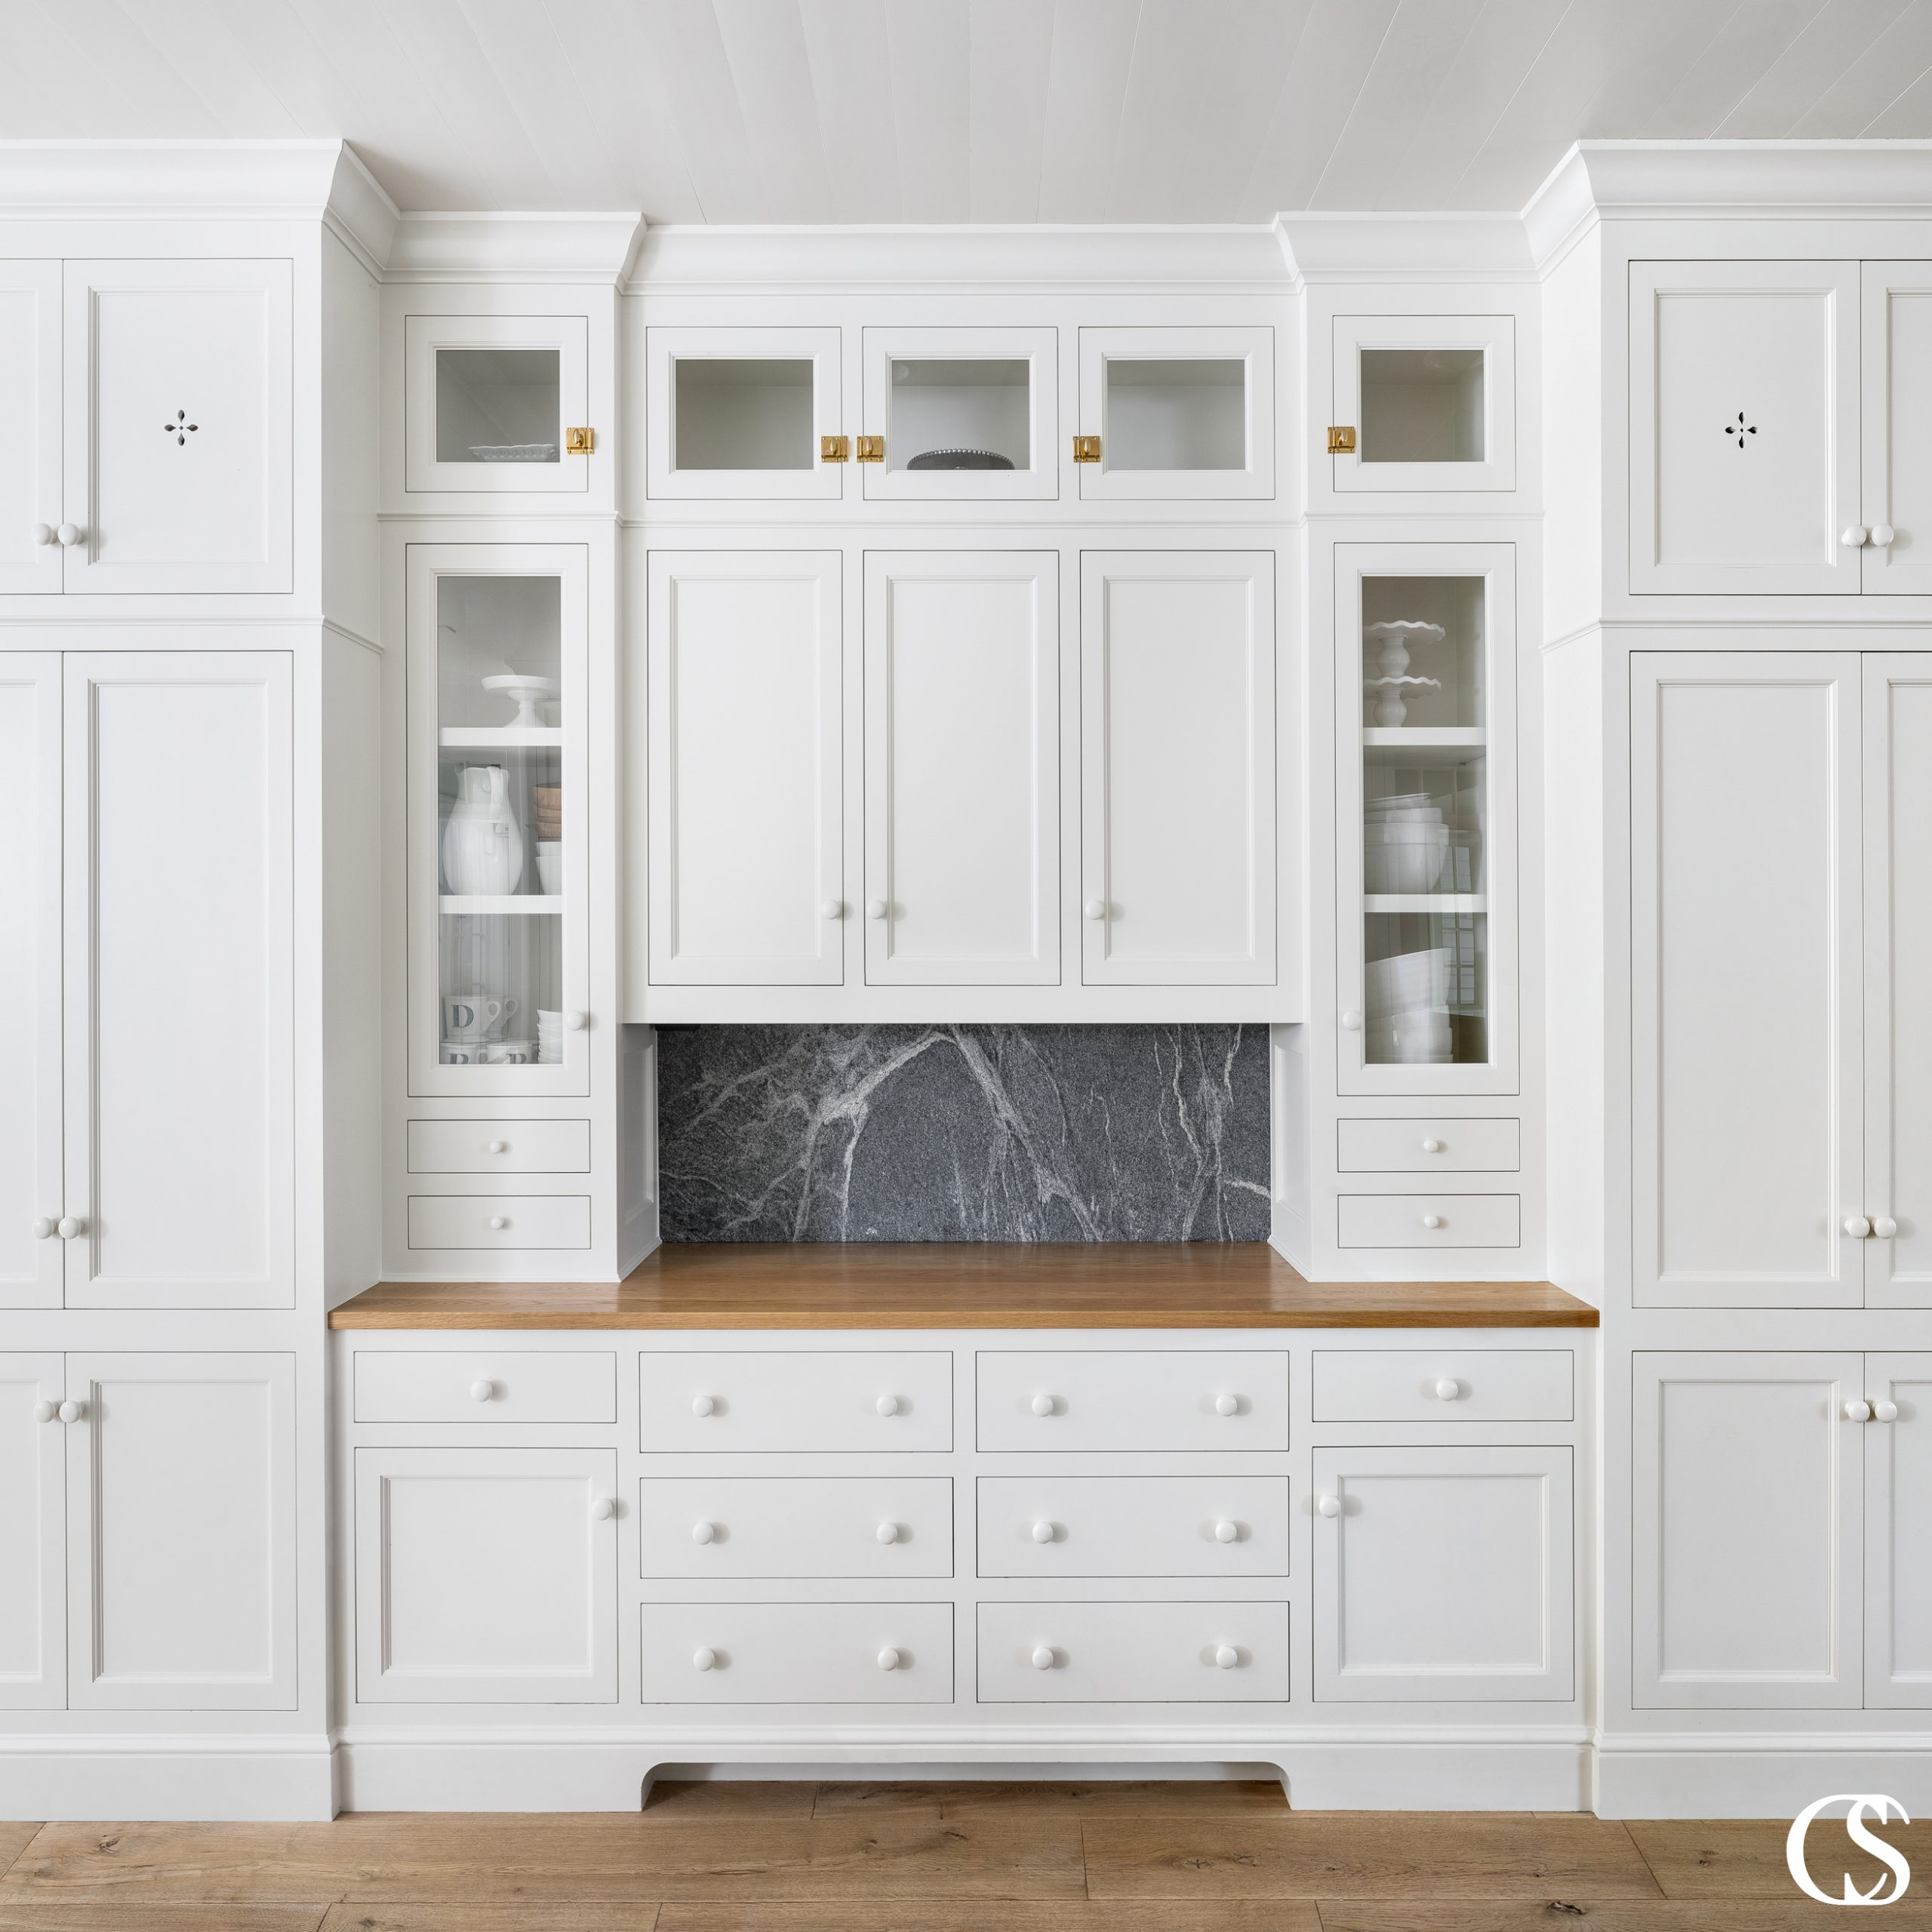 It's both the structure and design details that make for the best custom cabinets for your kitchen. With several sizes of drawers and cupboards, multiple door designs and hardware types, this white kitchen cabinet has everything you'd ever need to satisfy both.